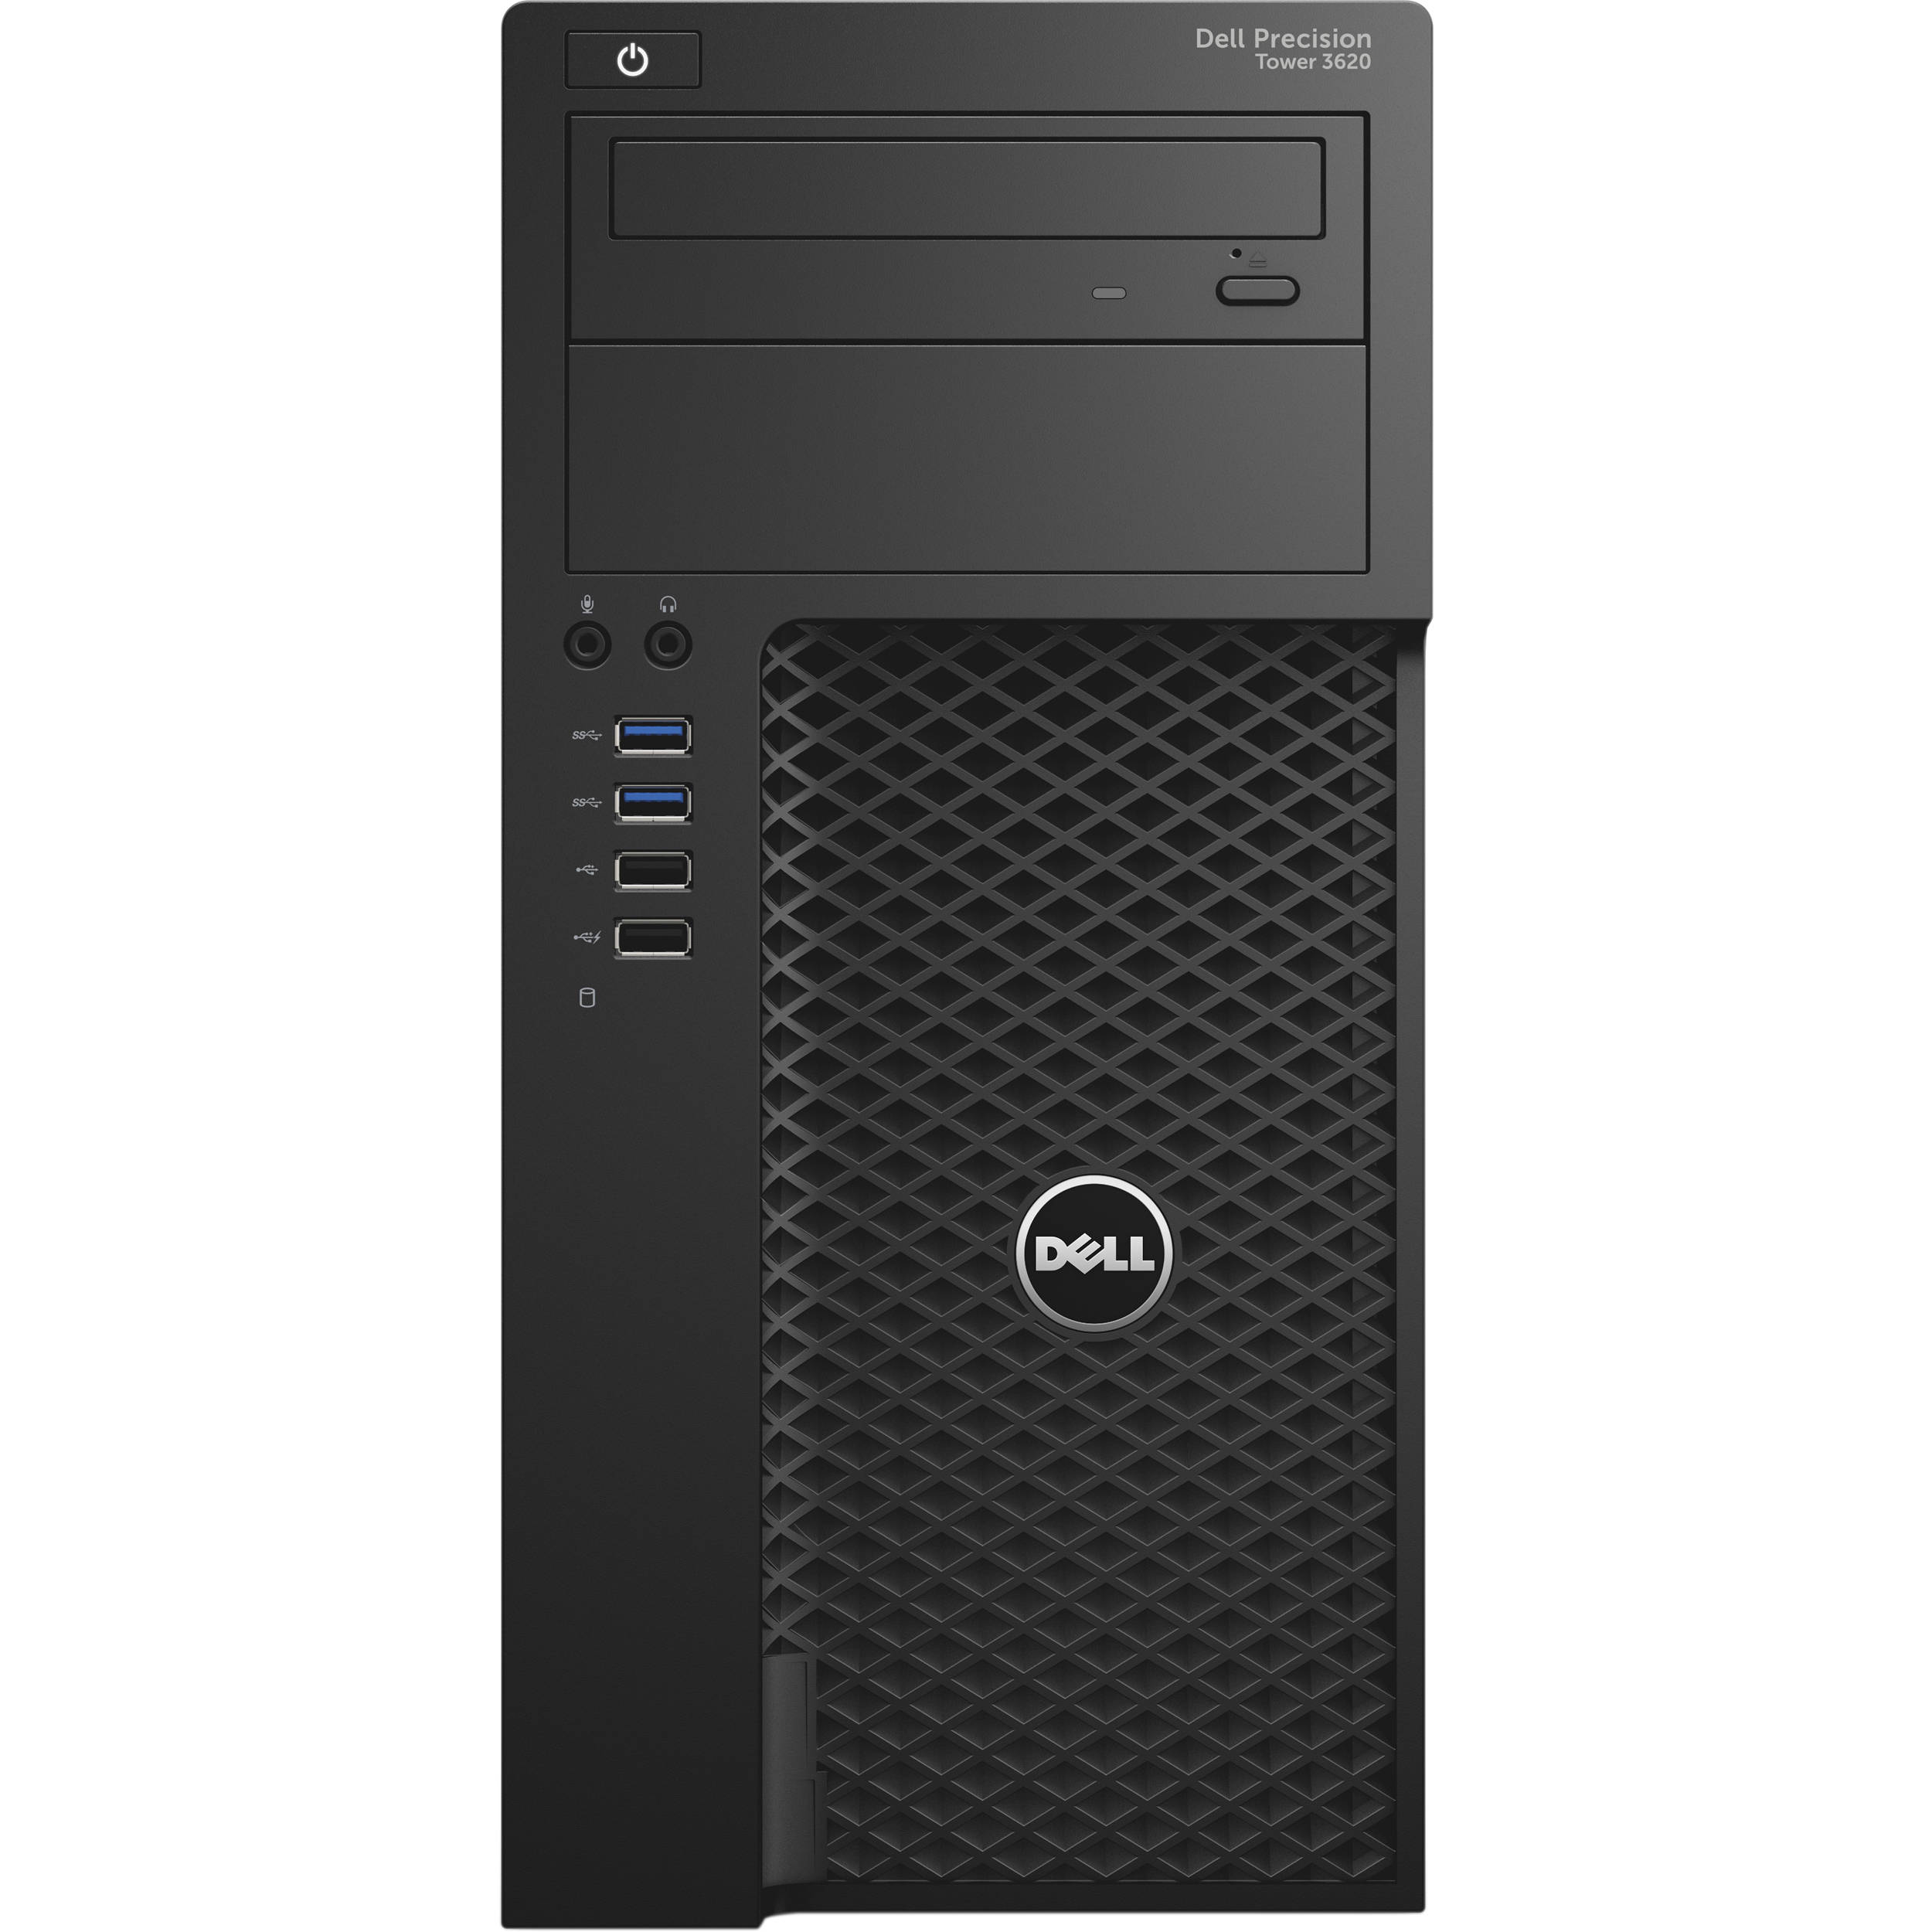 MÁY CHỦ DELL PRECISION T3620 WORKSTATION CORE™ I5-6500 3.2GHZ